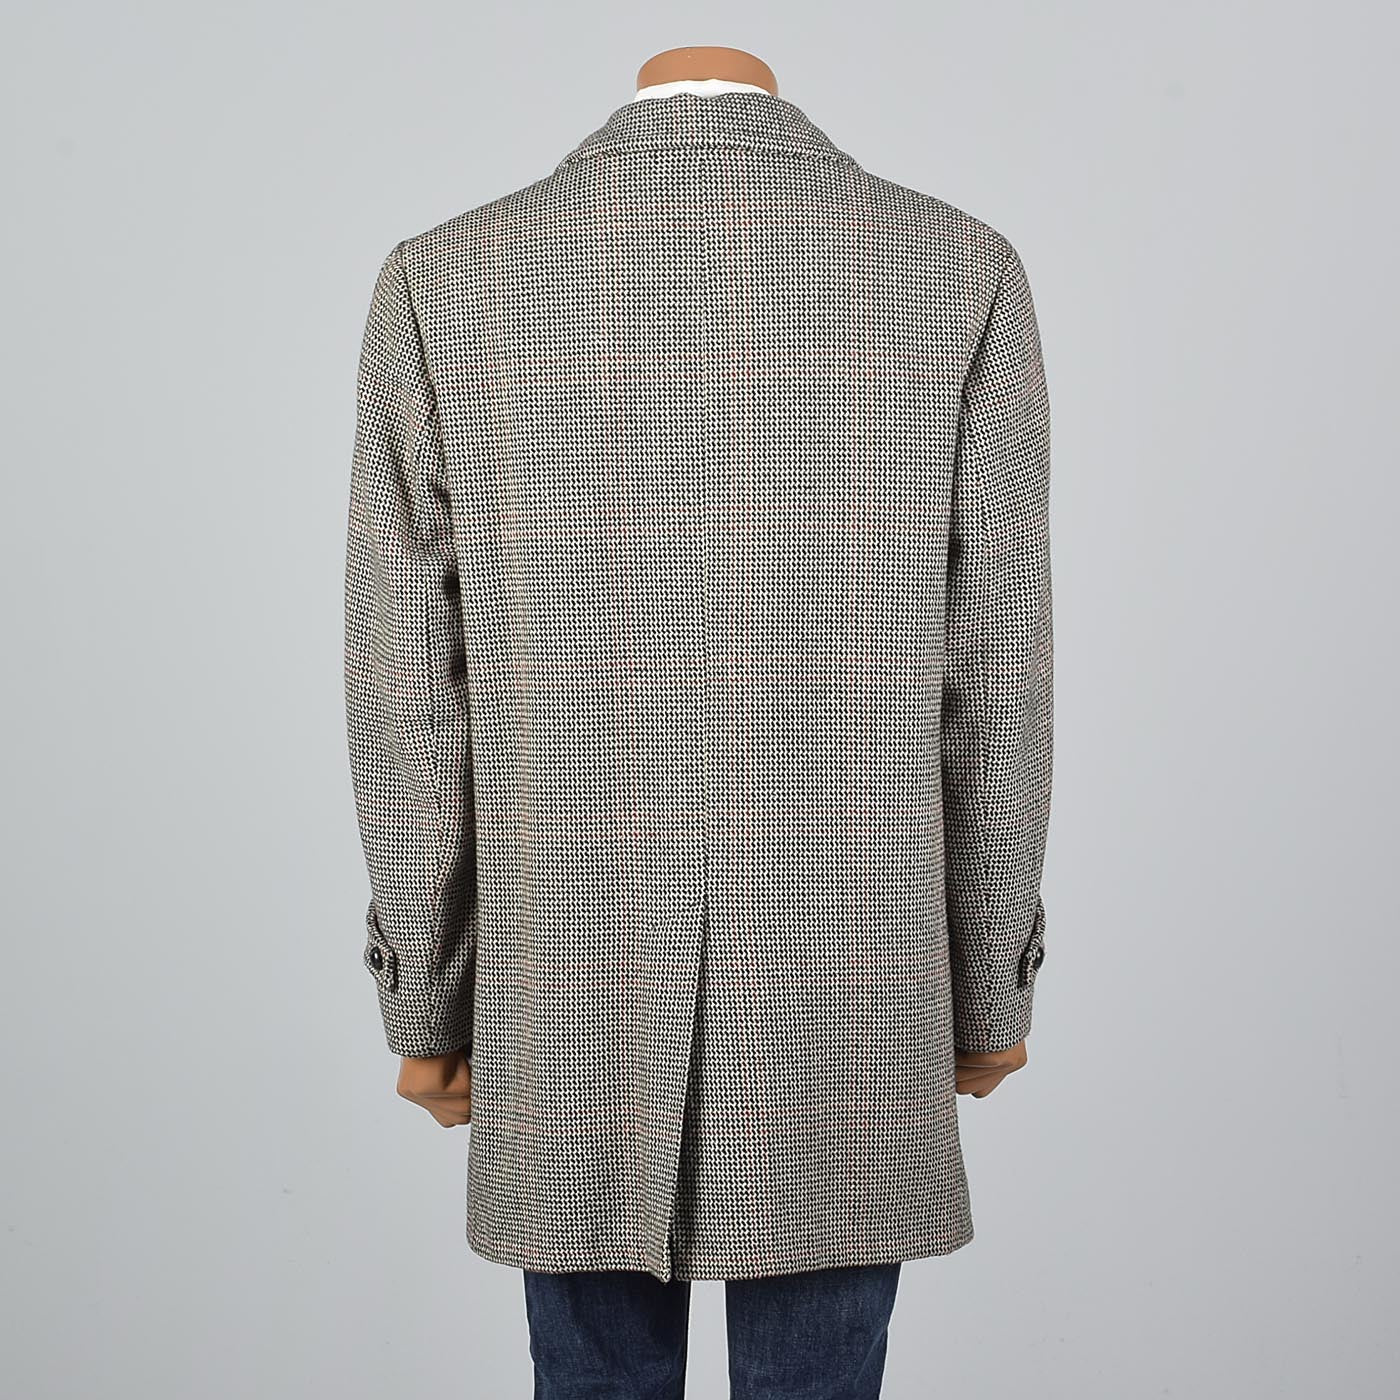 1970s Mens Tweed Coat in Windowpane Plaid